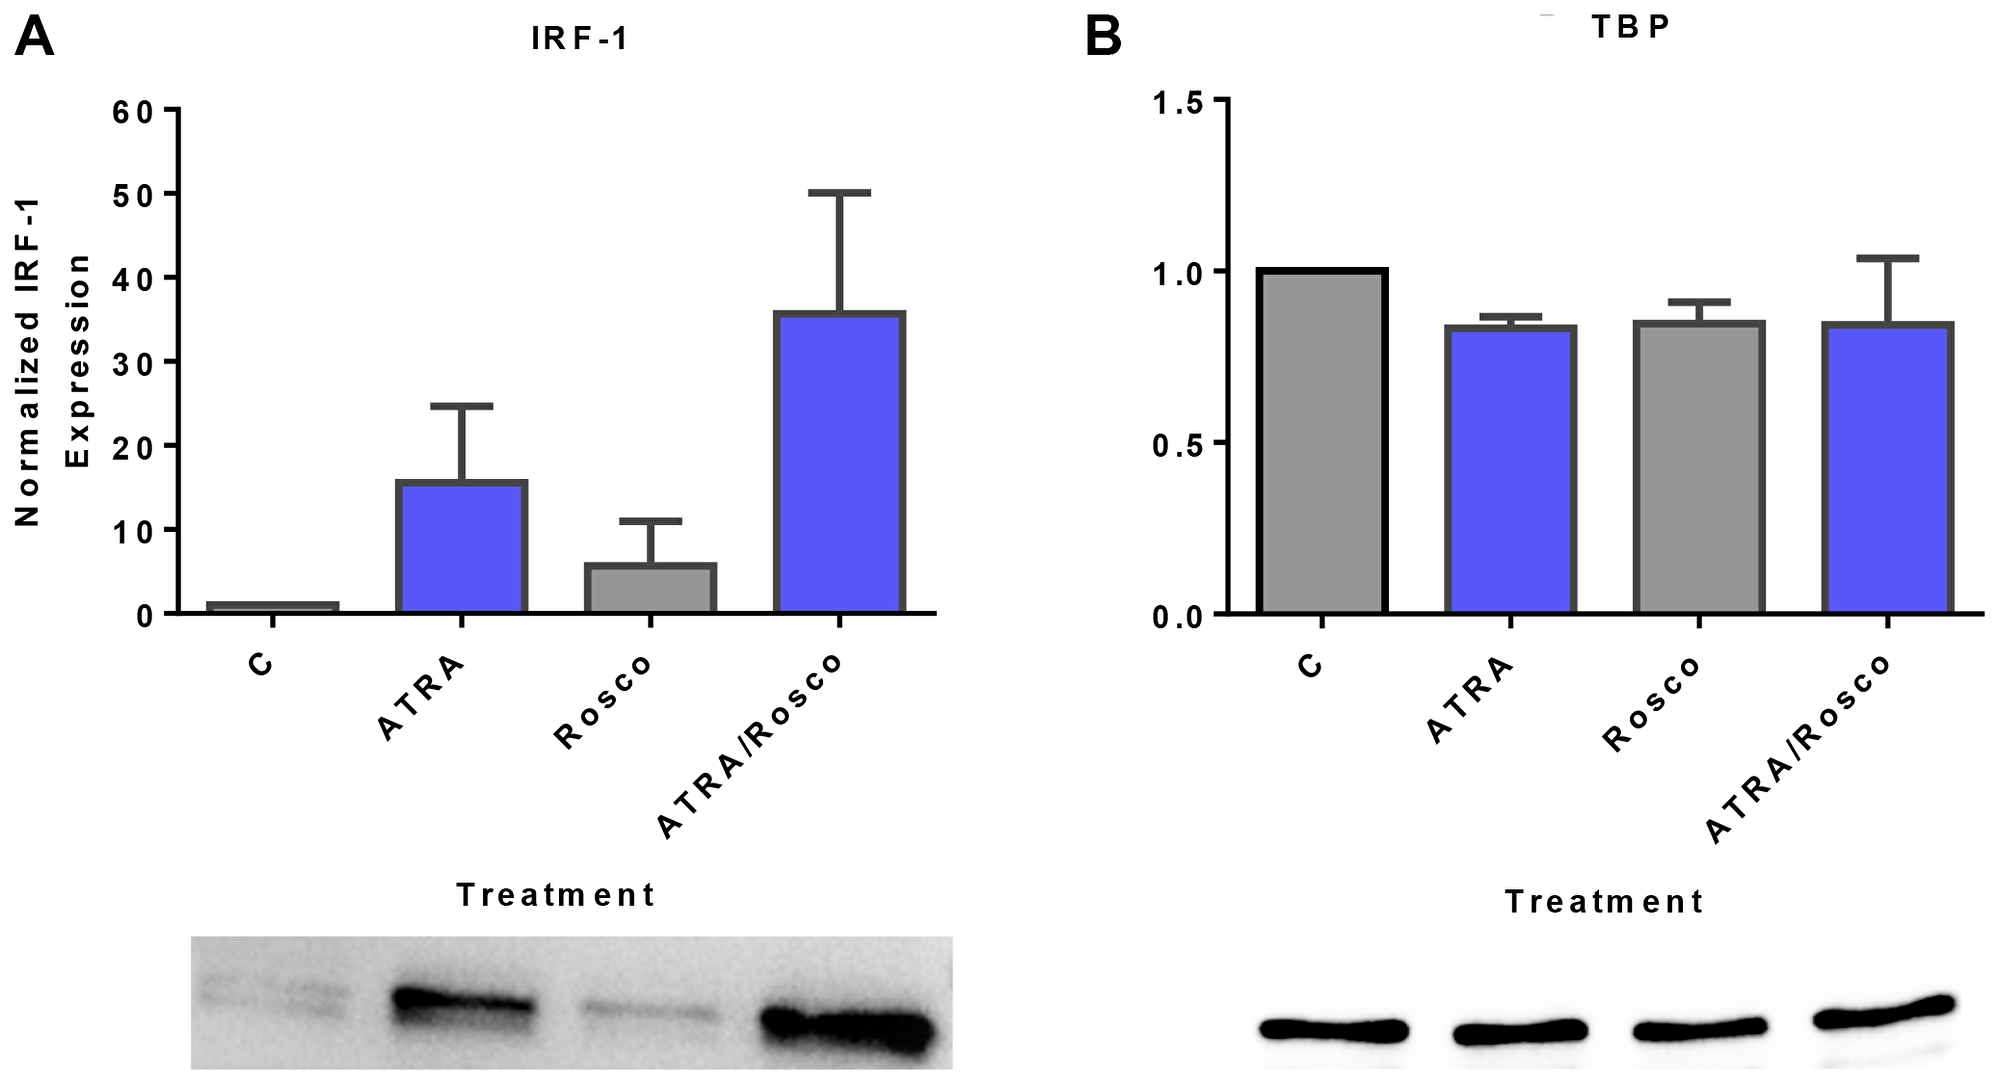 Roscovitine enhances ATRA-induced nuclear enrichment of IRF-1.